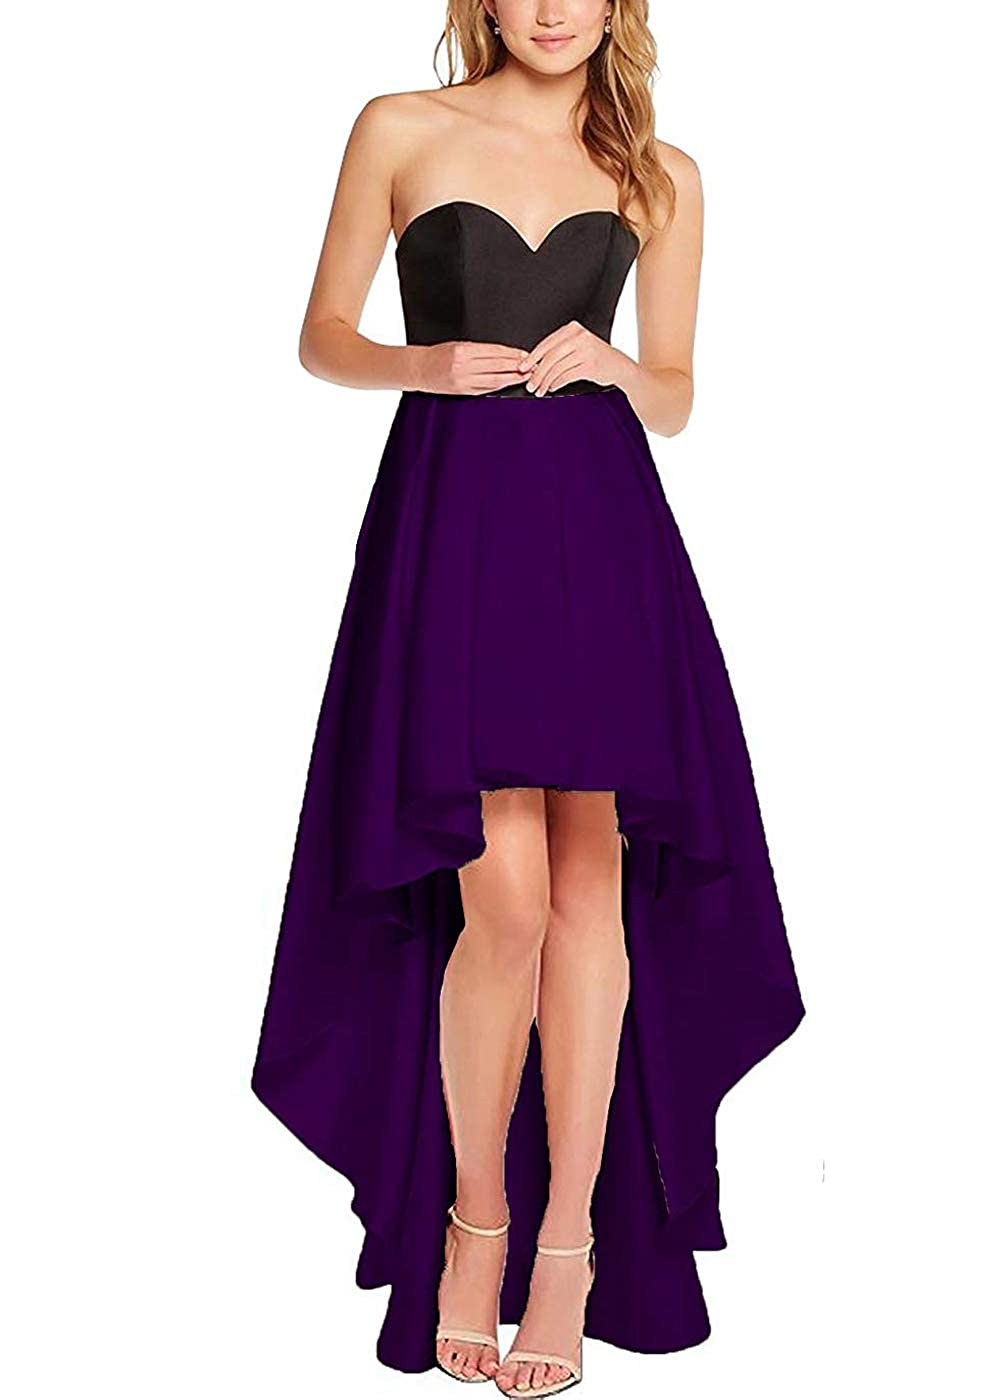 Purple purpleDresses Women's High Low Satin Prom Dress Sweetheart Formal Party Prom Cocktail Gown